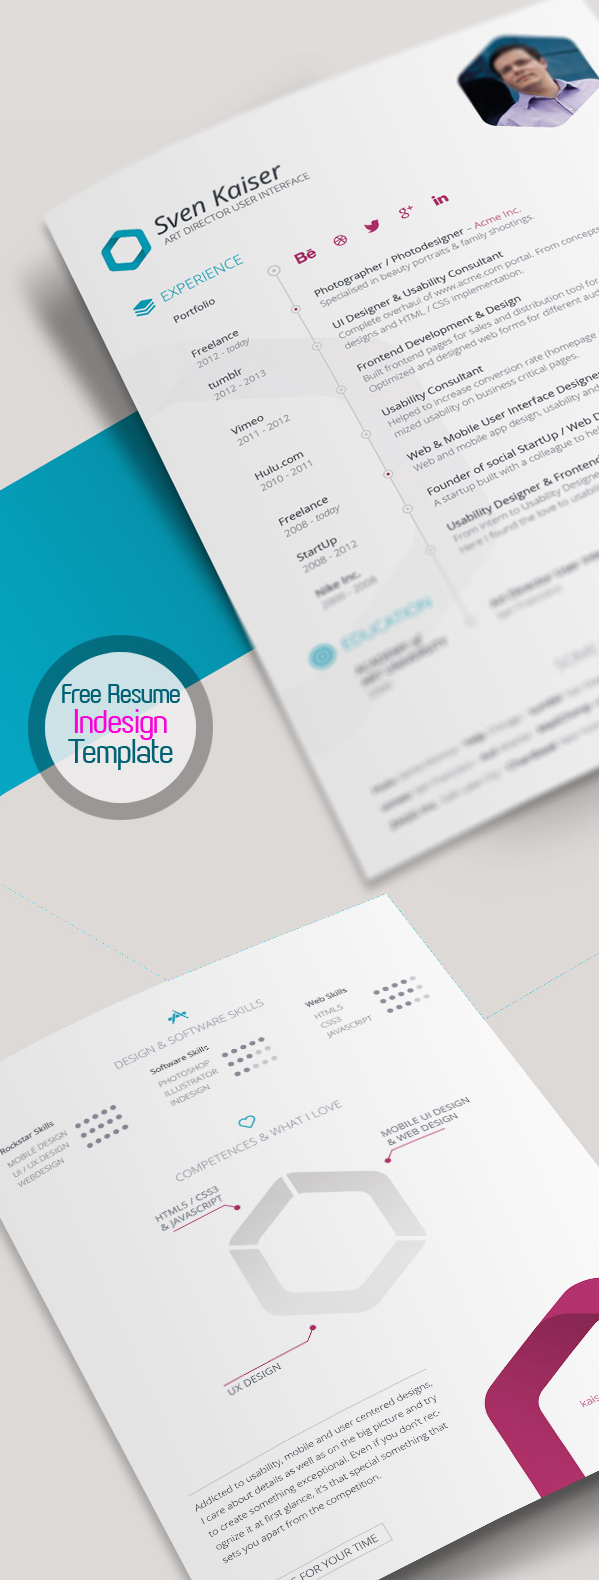 Free Resume Template for InDesign (Vita / CV)